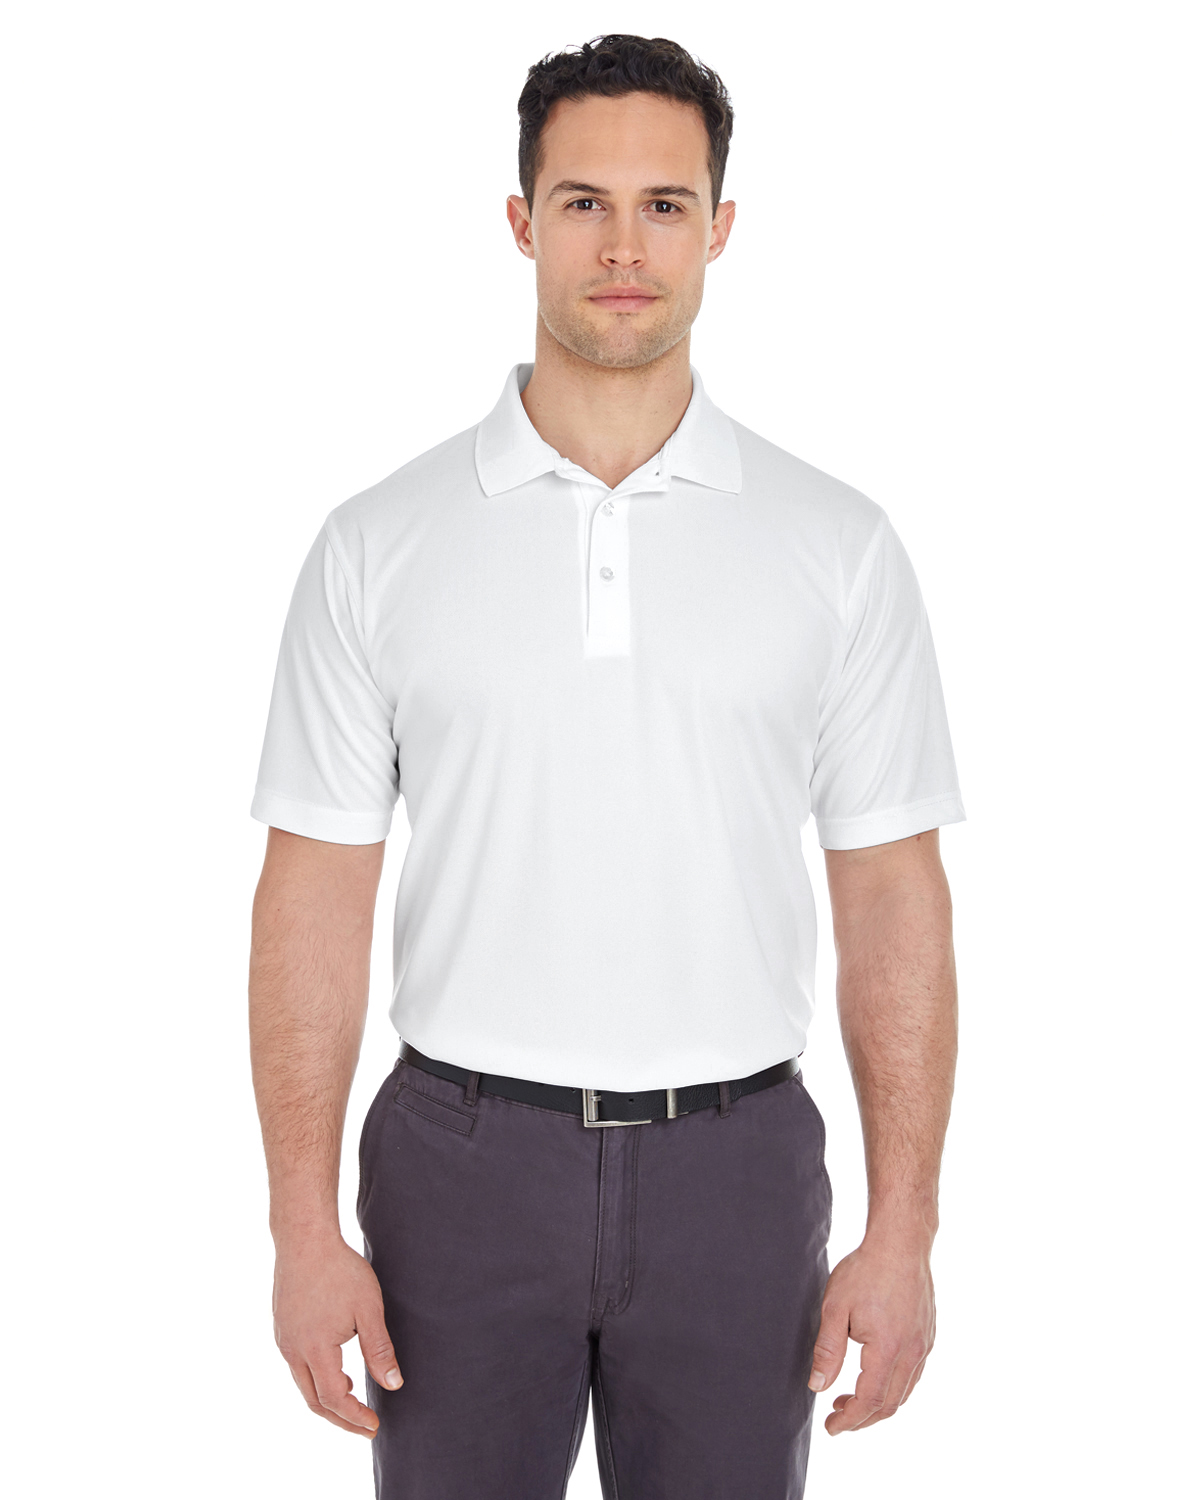 Ultraclub 8210t Men S Tall Cool Amp Dry Mesh Pique Polo